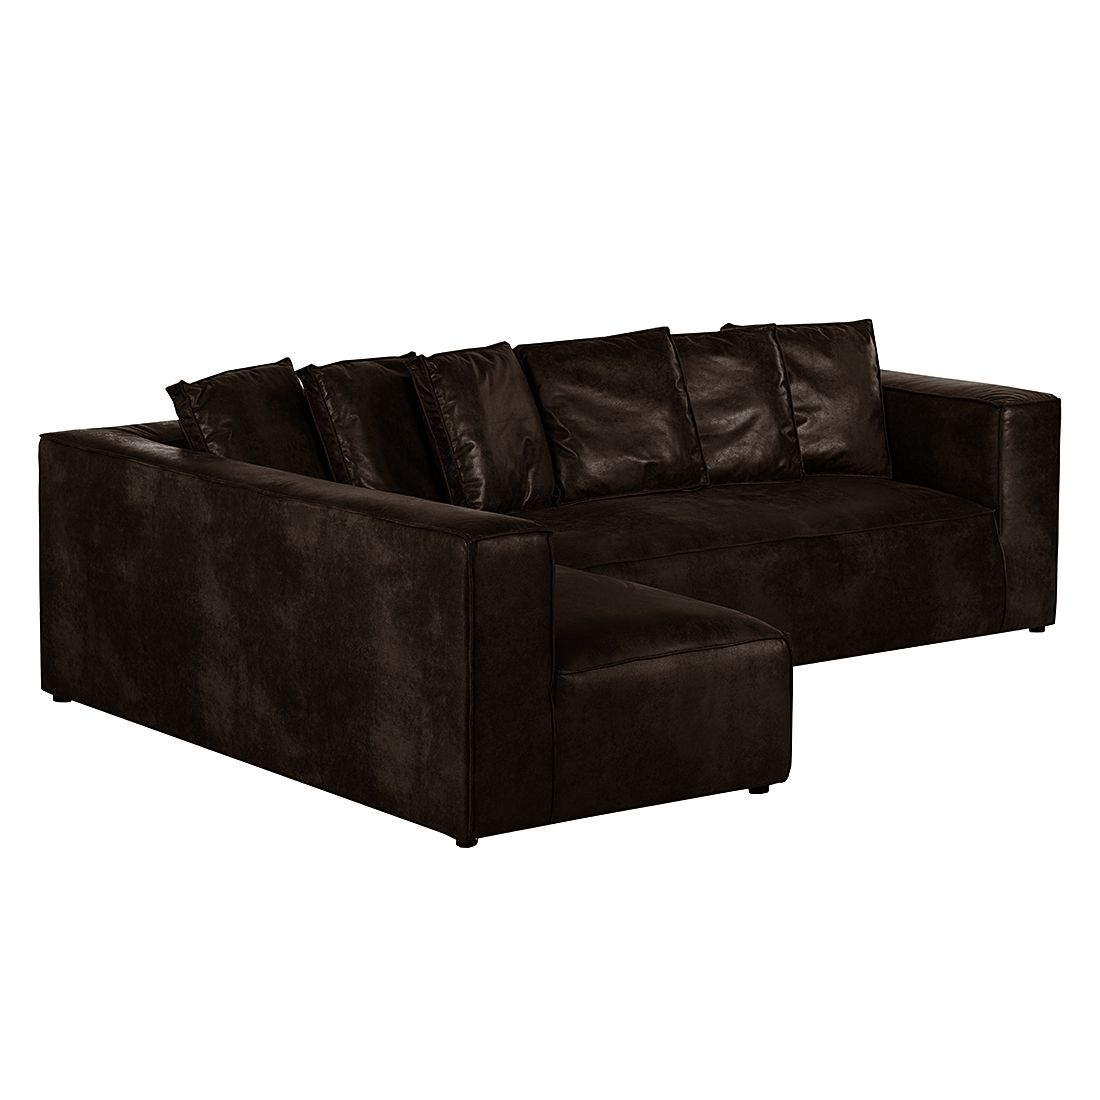 ecksofa debbie ii antiklederoptik ottomane. Black Bedroom Furniture Sets. Home Design Ideas